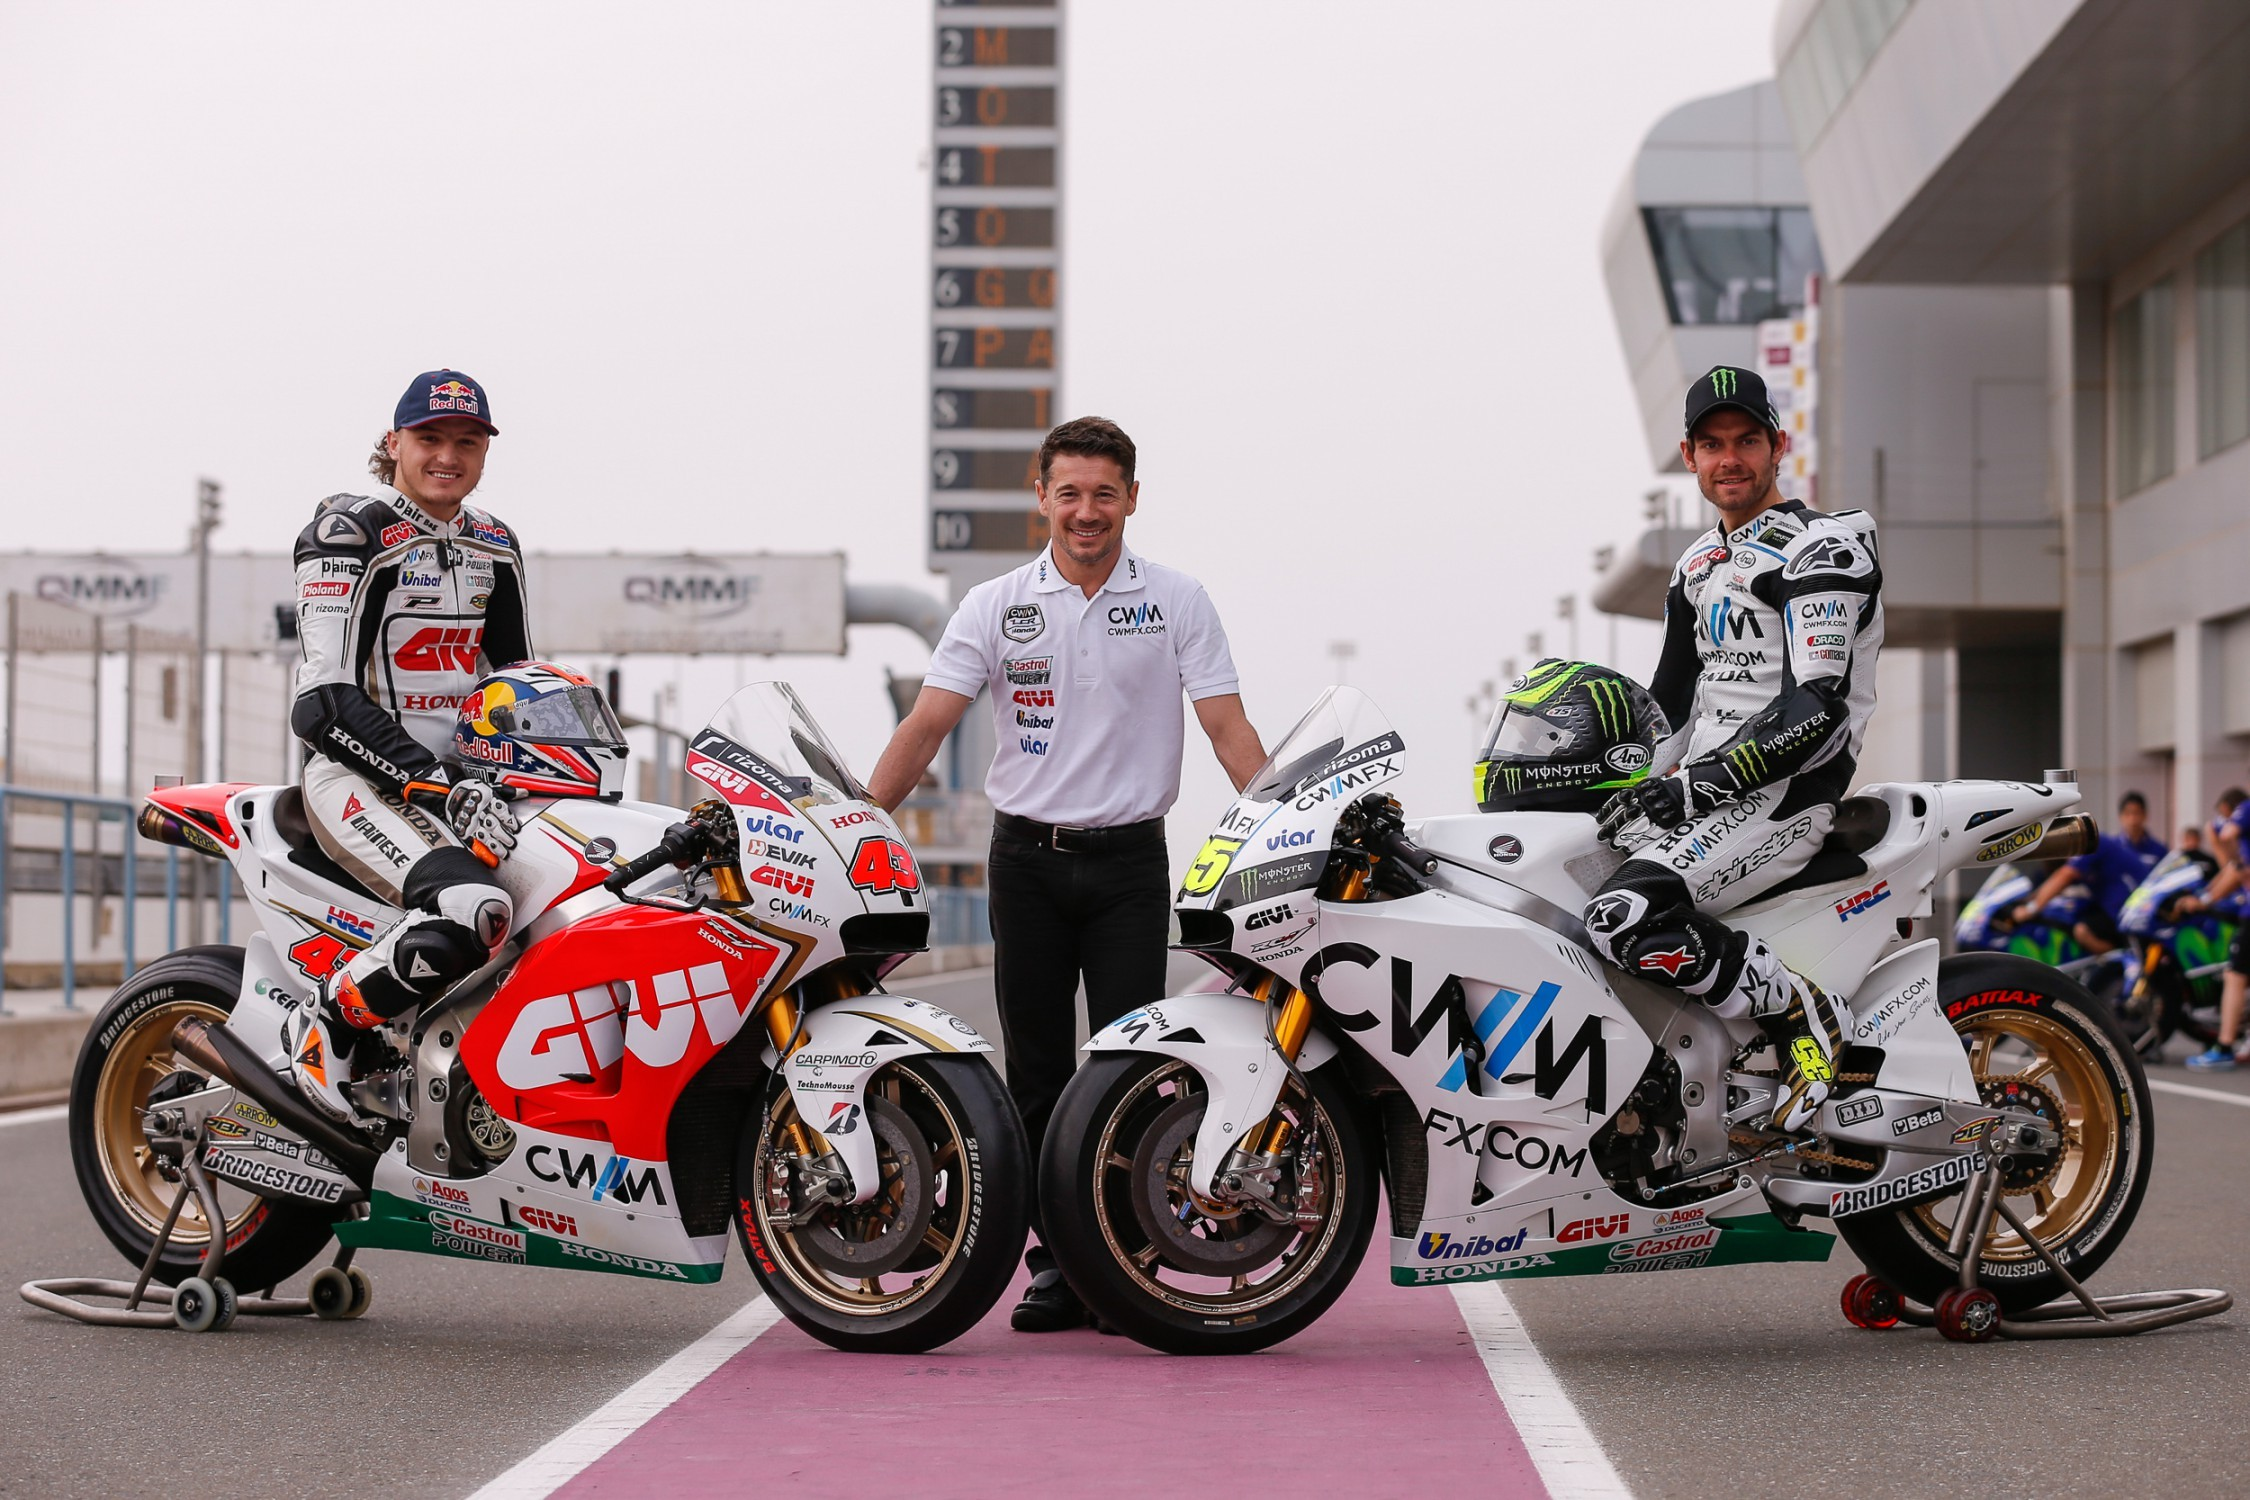 Cal Crutchlow Stays with LCR Honda Team in 2016 - autoevolution